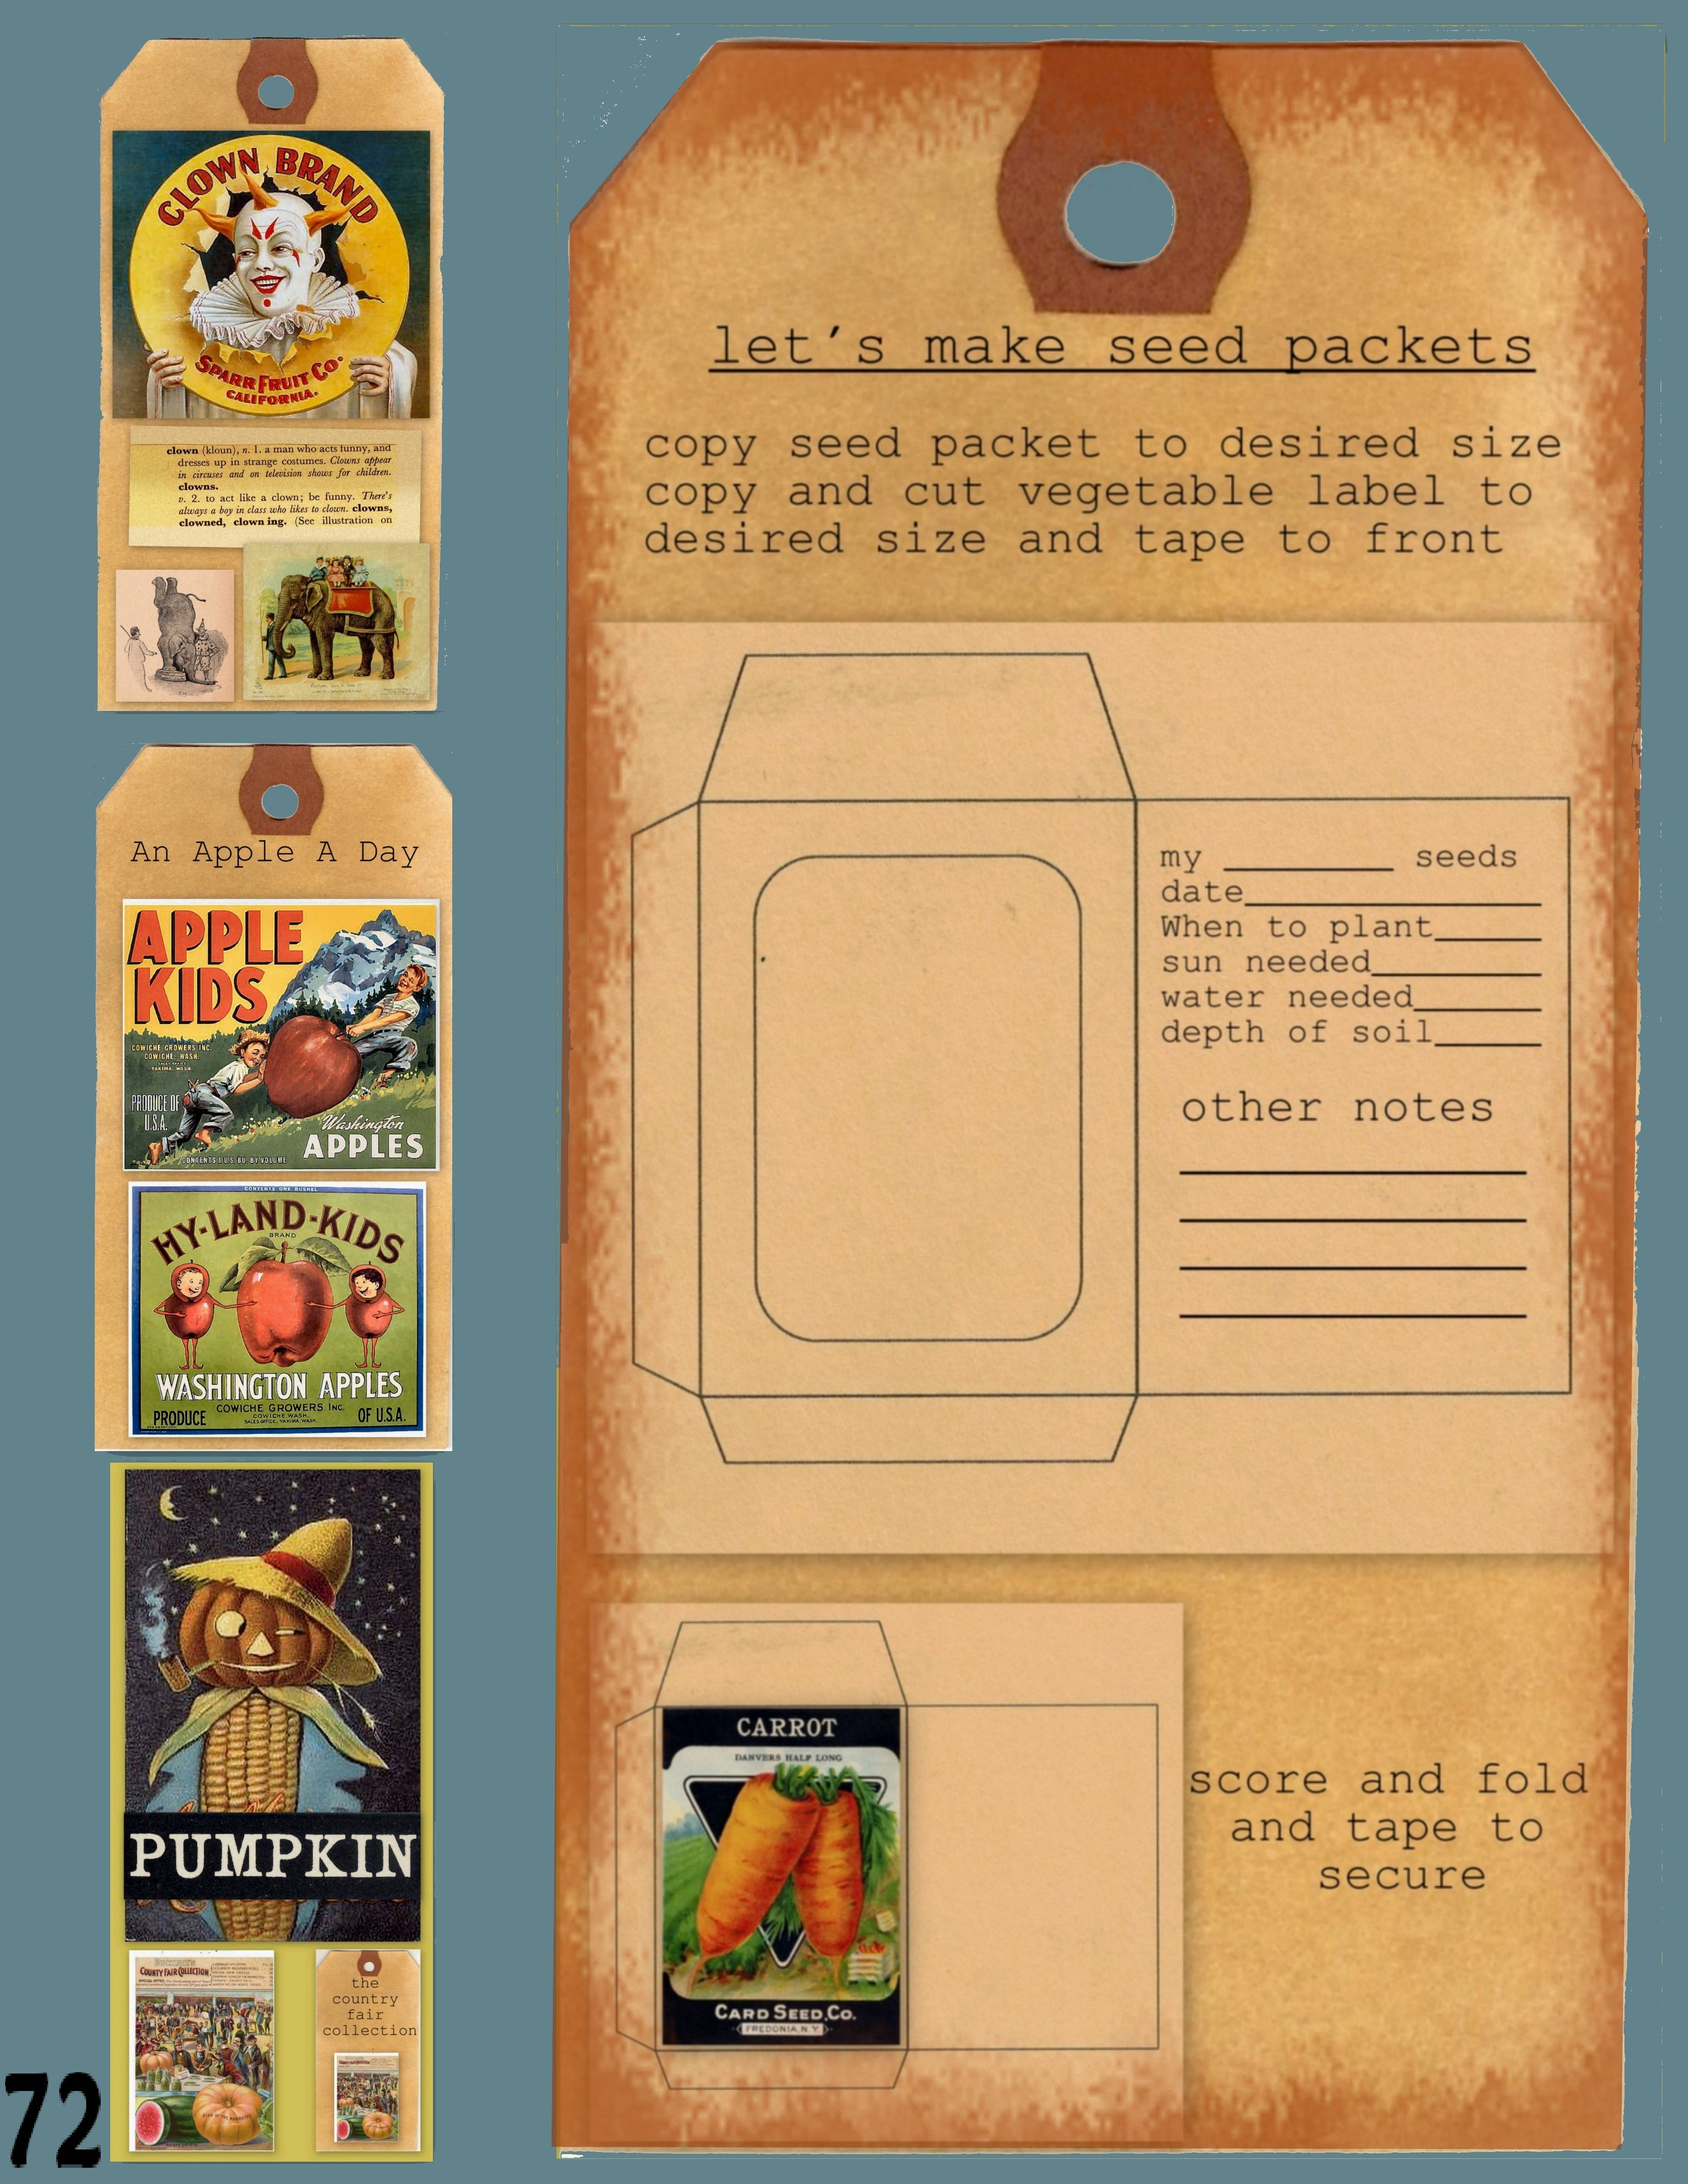 Seed Packet Template Cutout Seed Packets Pinterest Seed - Seed packet template